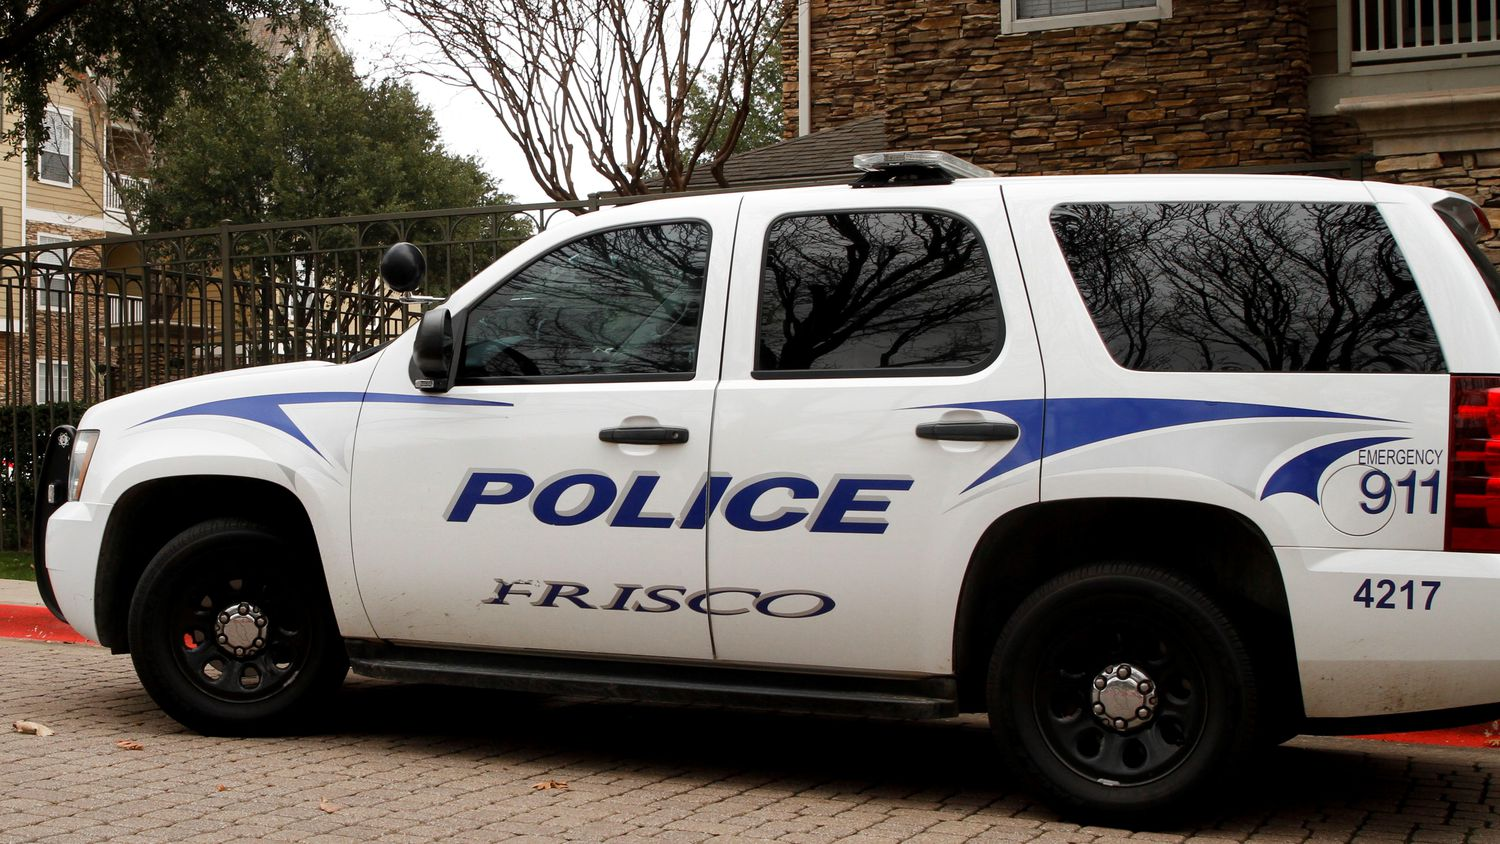 A Frisco police vehicle is shown in this file photo.